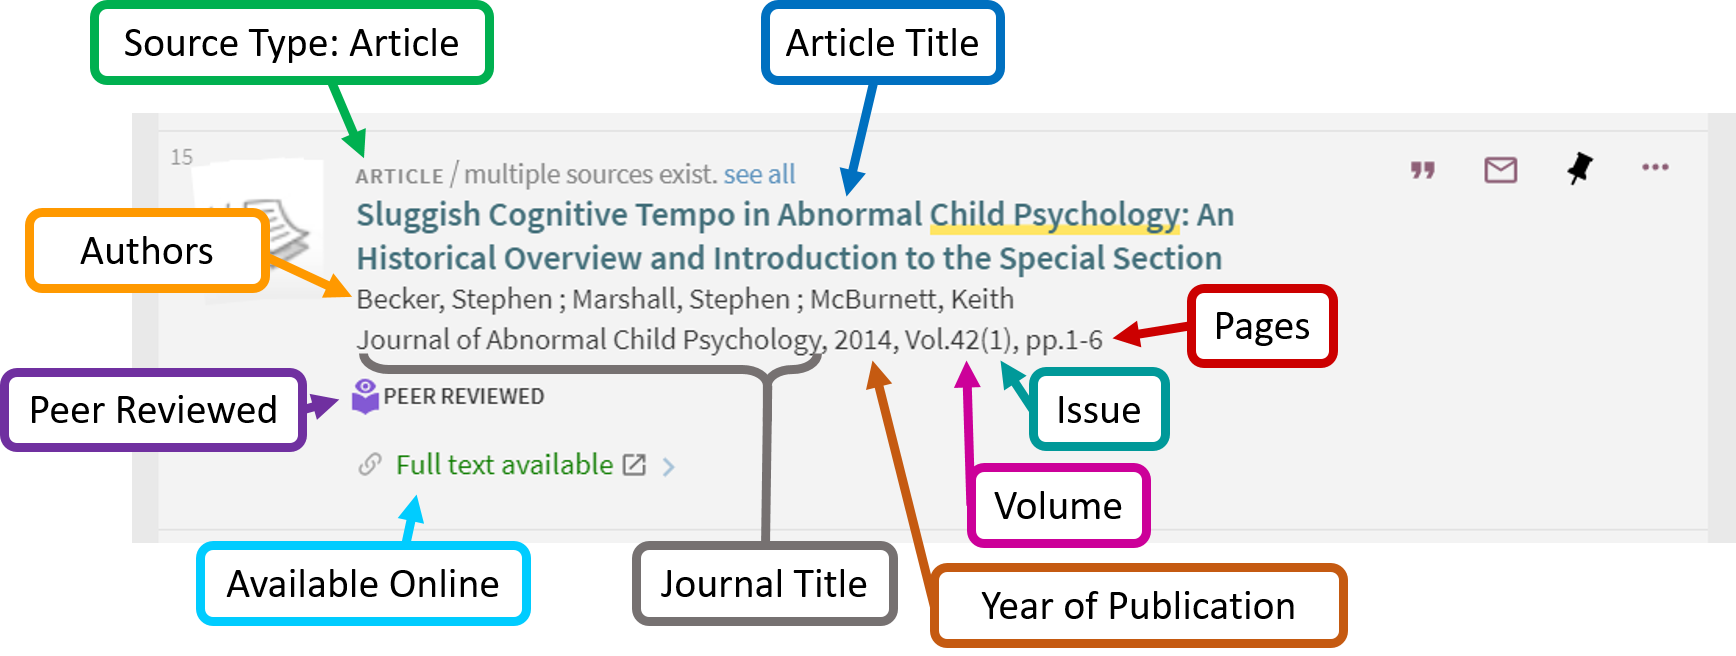 A screen grab of the an article from a Smart Search search results list. The first row indicates the source type, an article. The next row is the title of the article. Then the authors are listed. Then the title of the journal, the year of publication, the volume, the issue and the page number. There is a peer reviewed icon indicating this article is from a peer reviewed journal. At the bottom of the record there is a link to access it online.